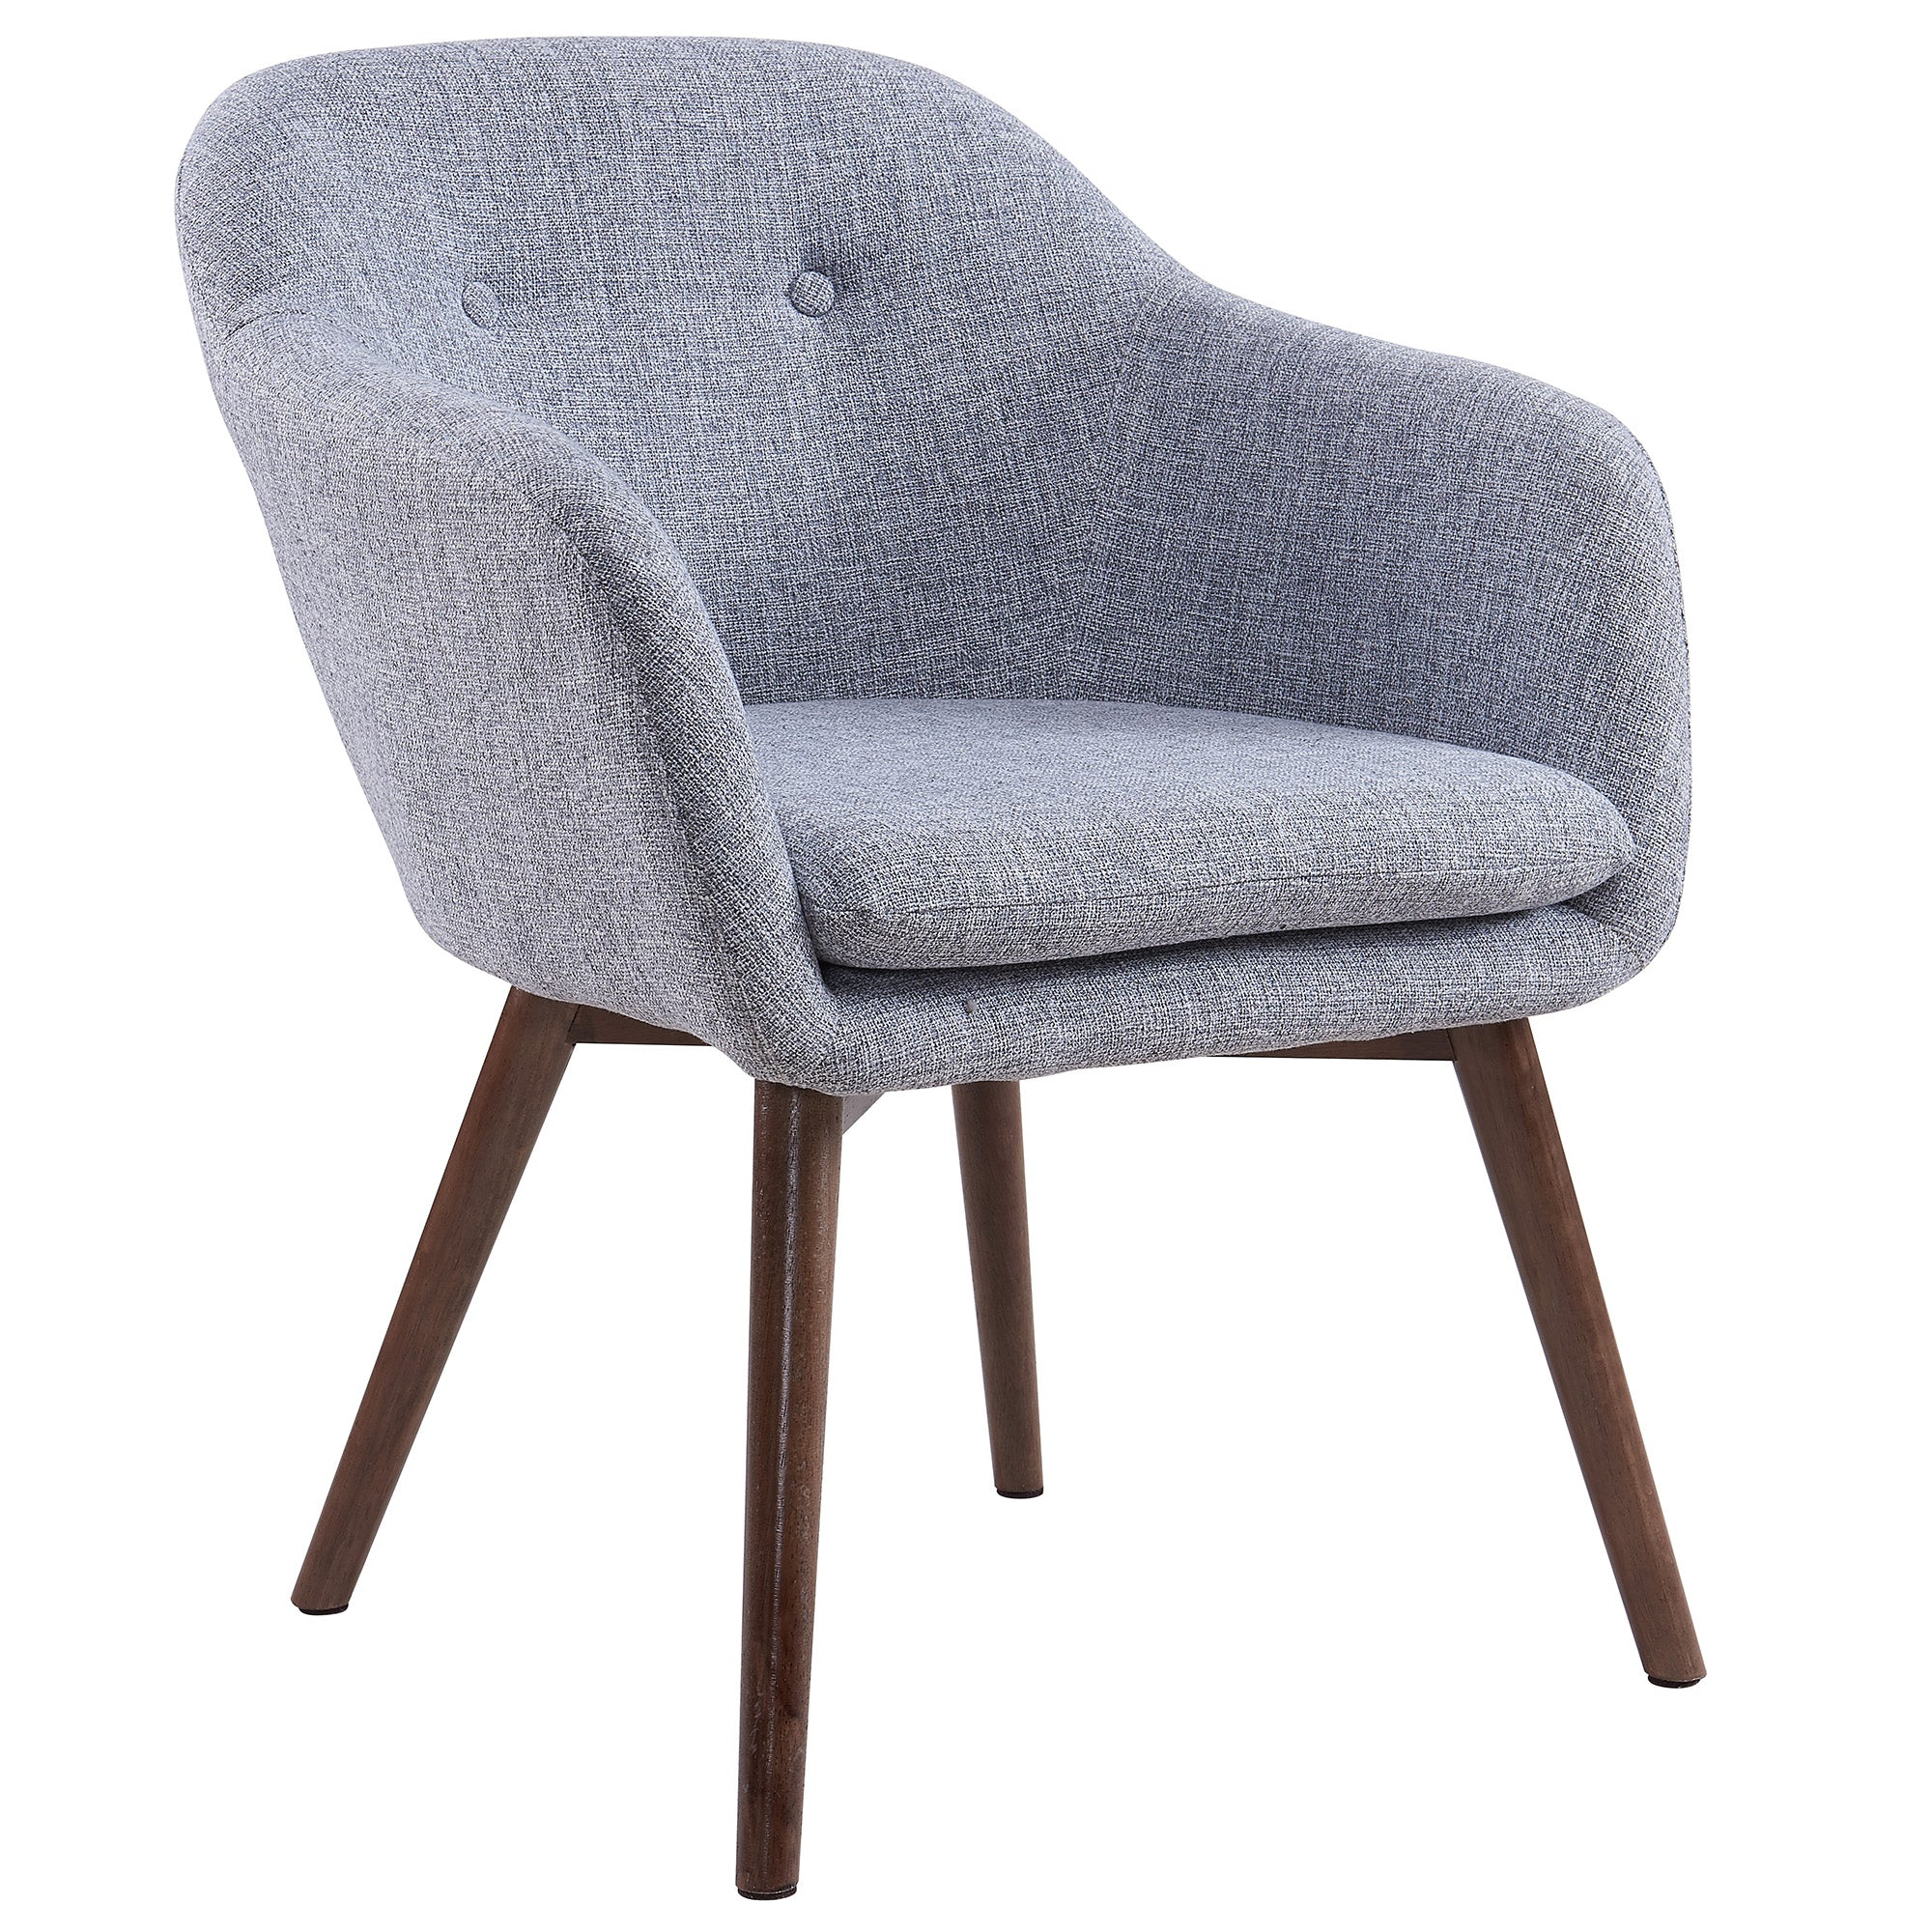 Minto Accent / Dining Chair - Grey Blend